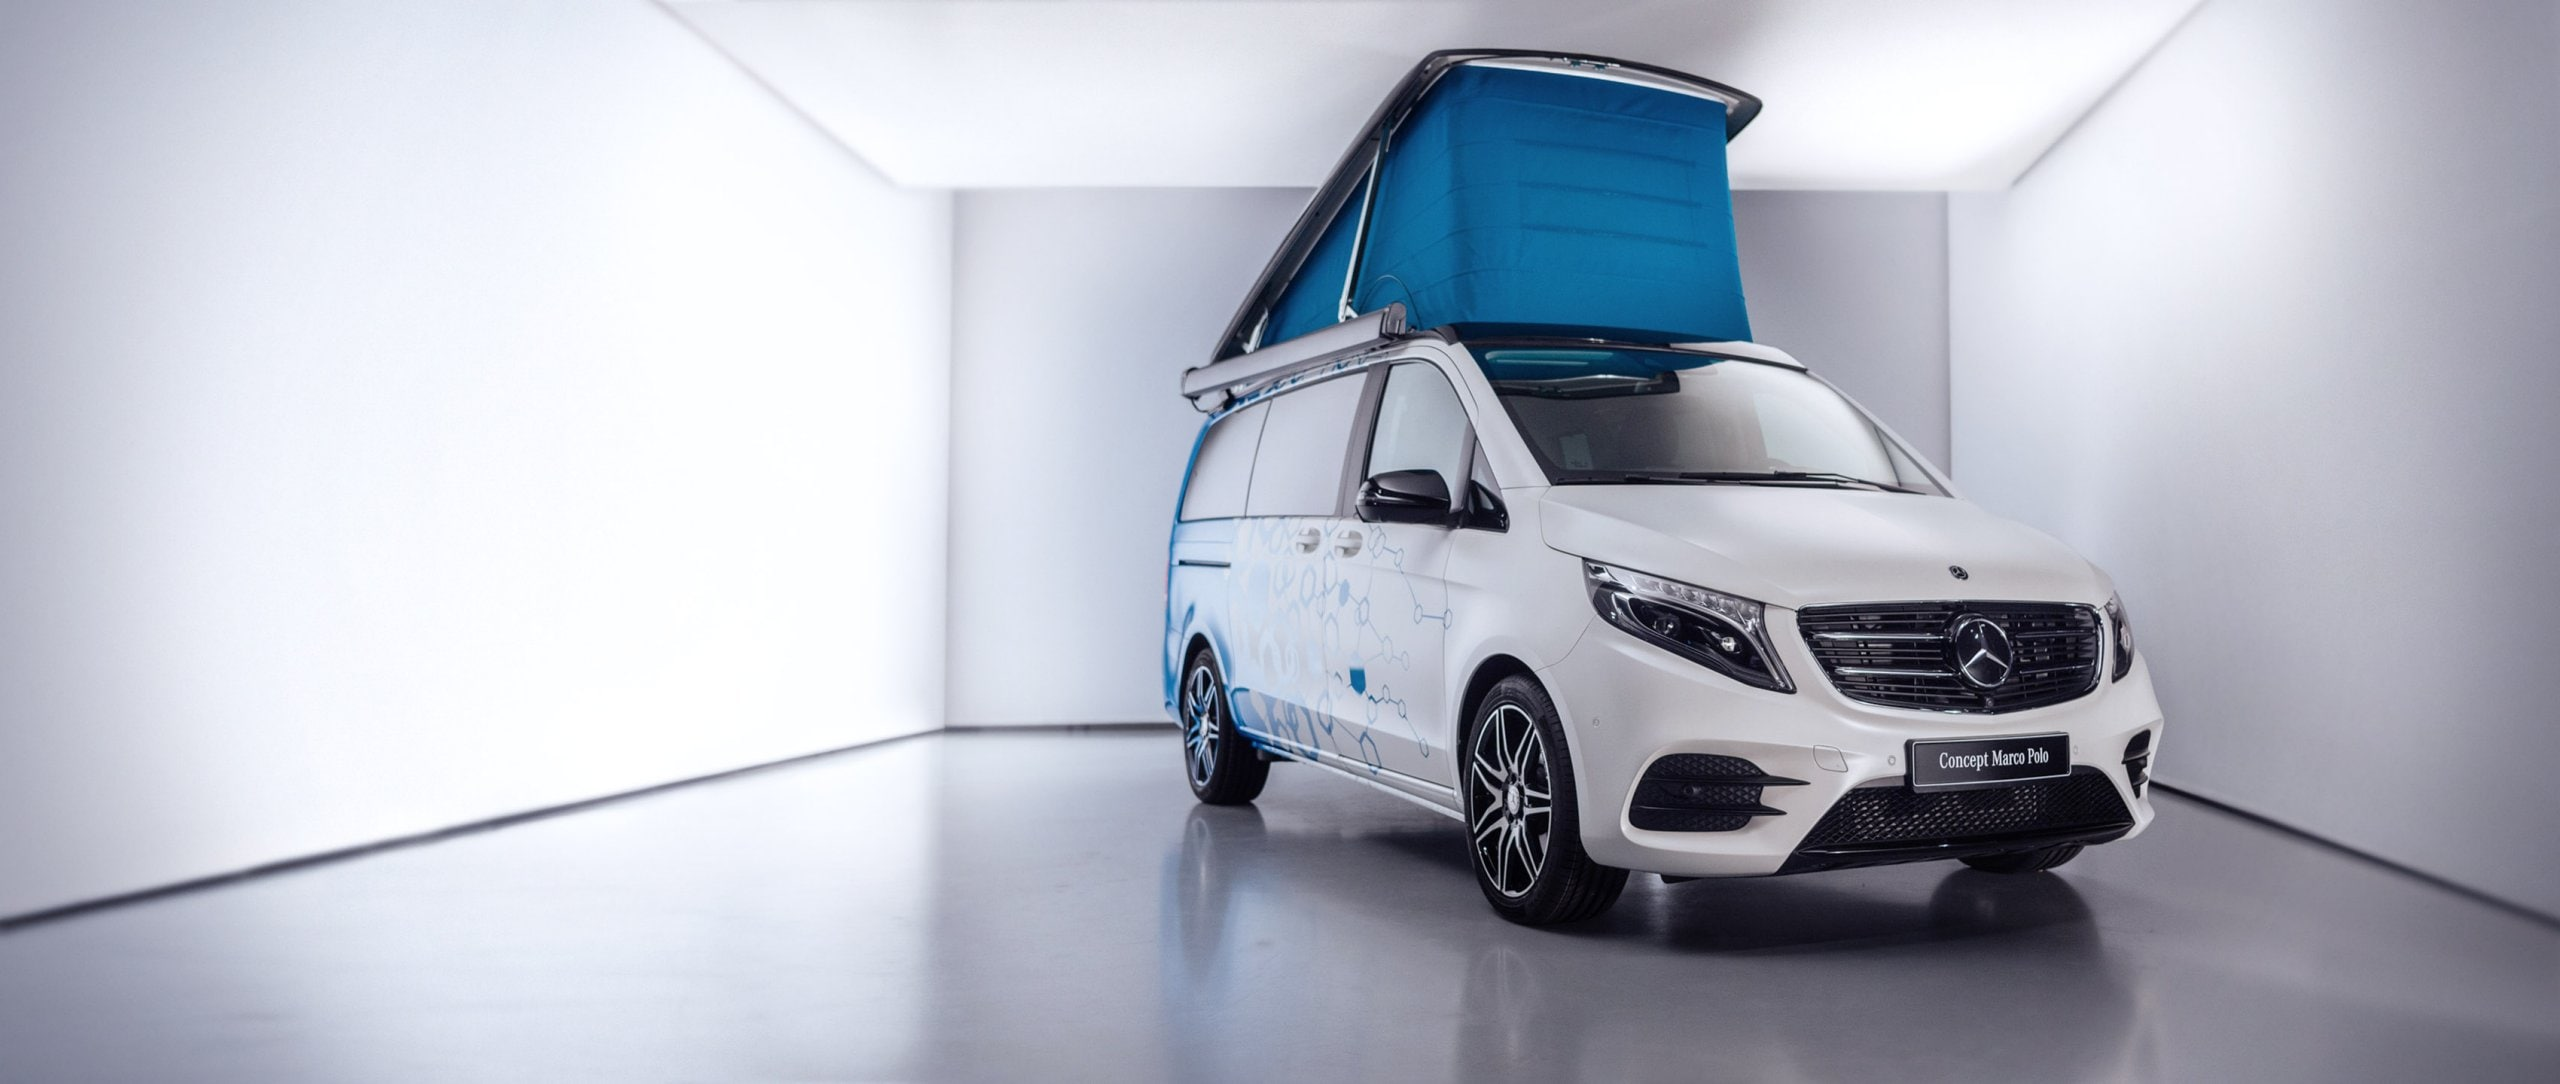 The Concept Marco Polo stands in a studio with the roof folded out